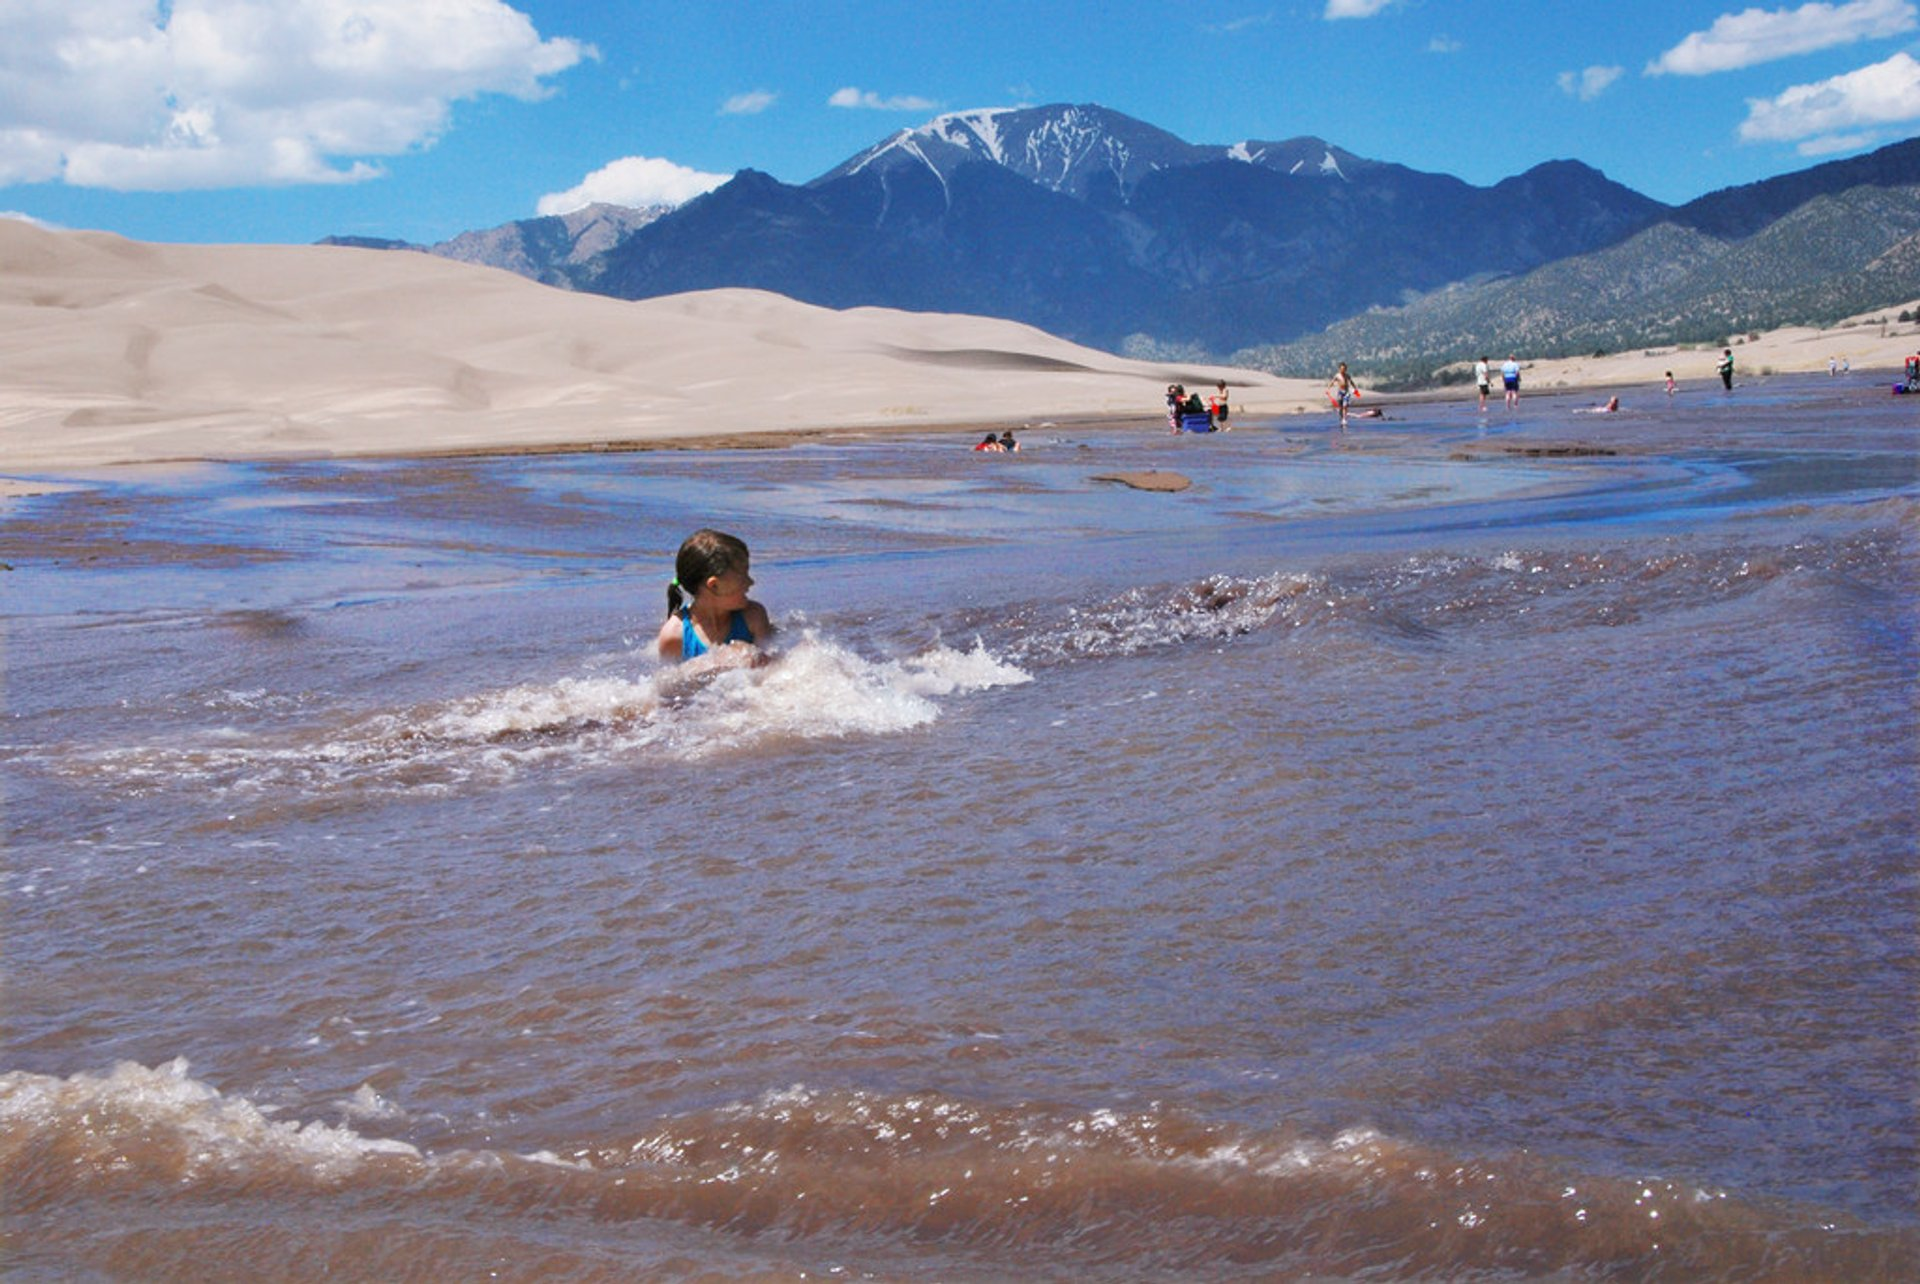 Medano Creek, Great Sand Dunes National Park and Preserve in Colorado - Best Season 2020